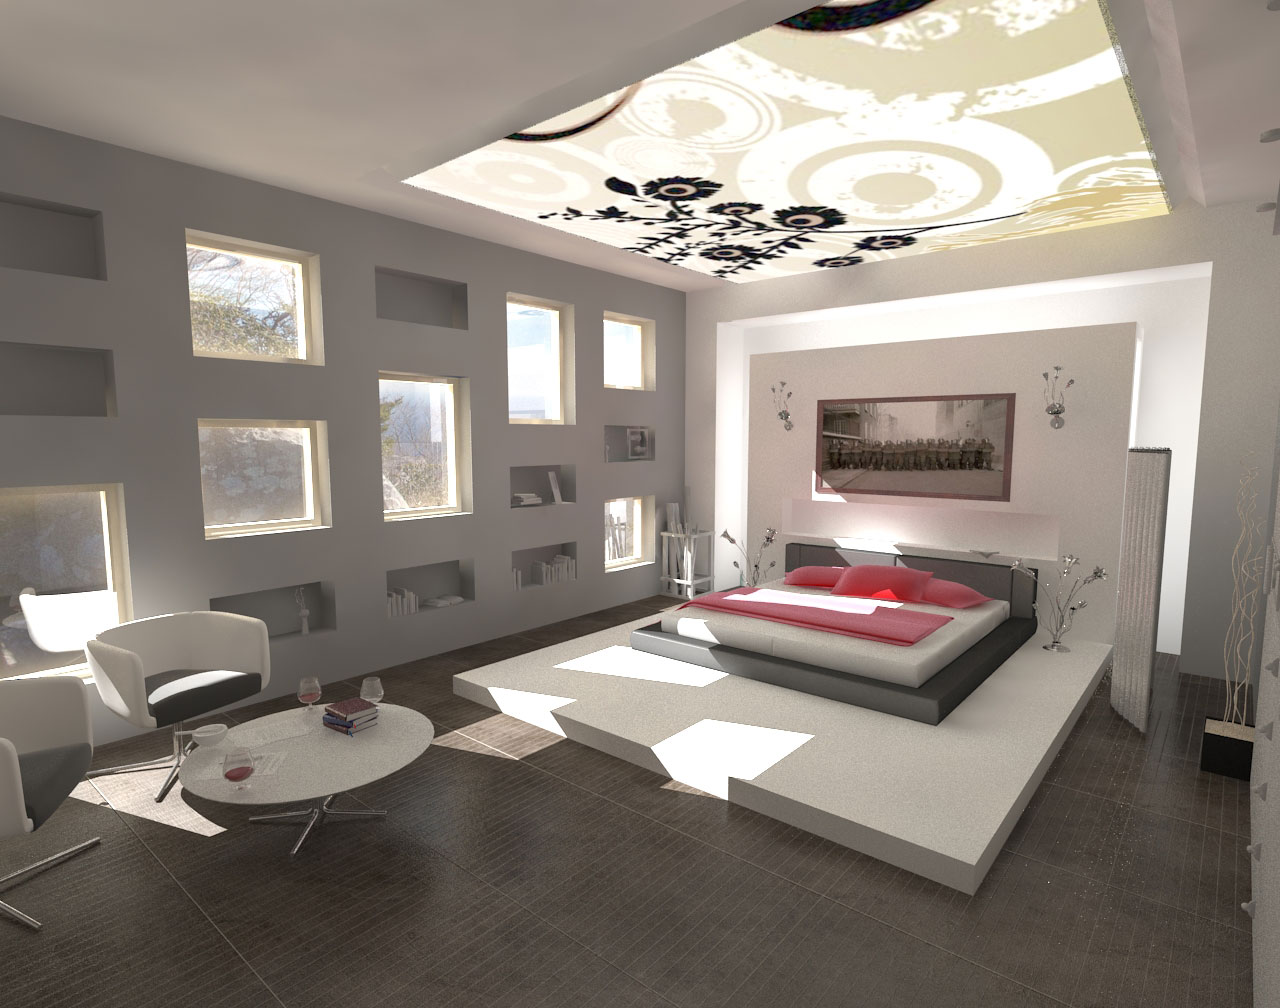 Decorations minimalist design modern bedroom interior for Bedroom ideas minimalist